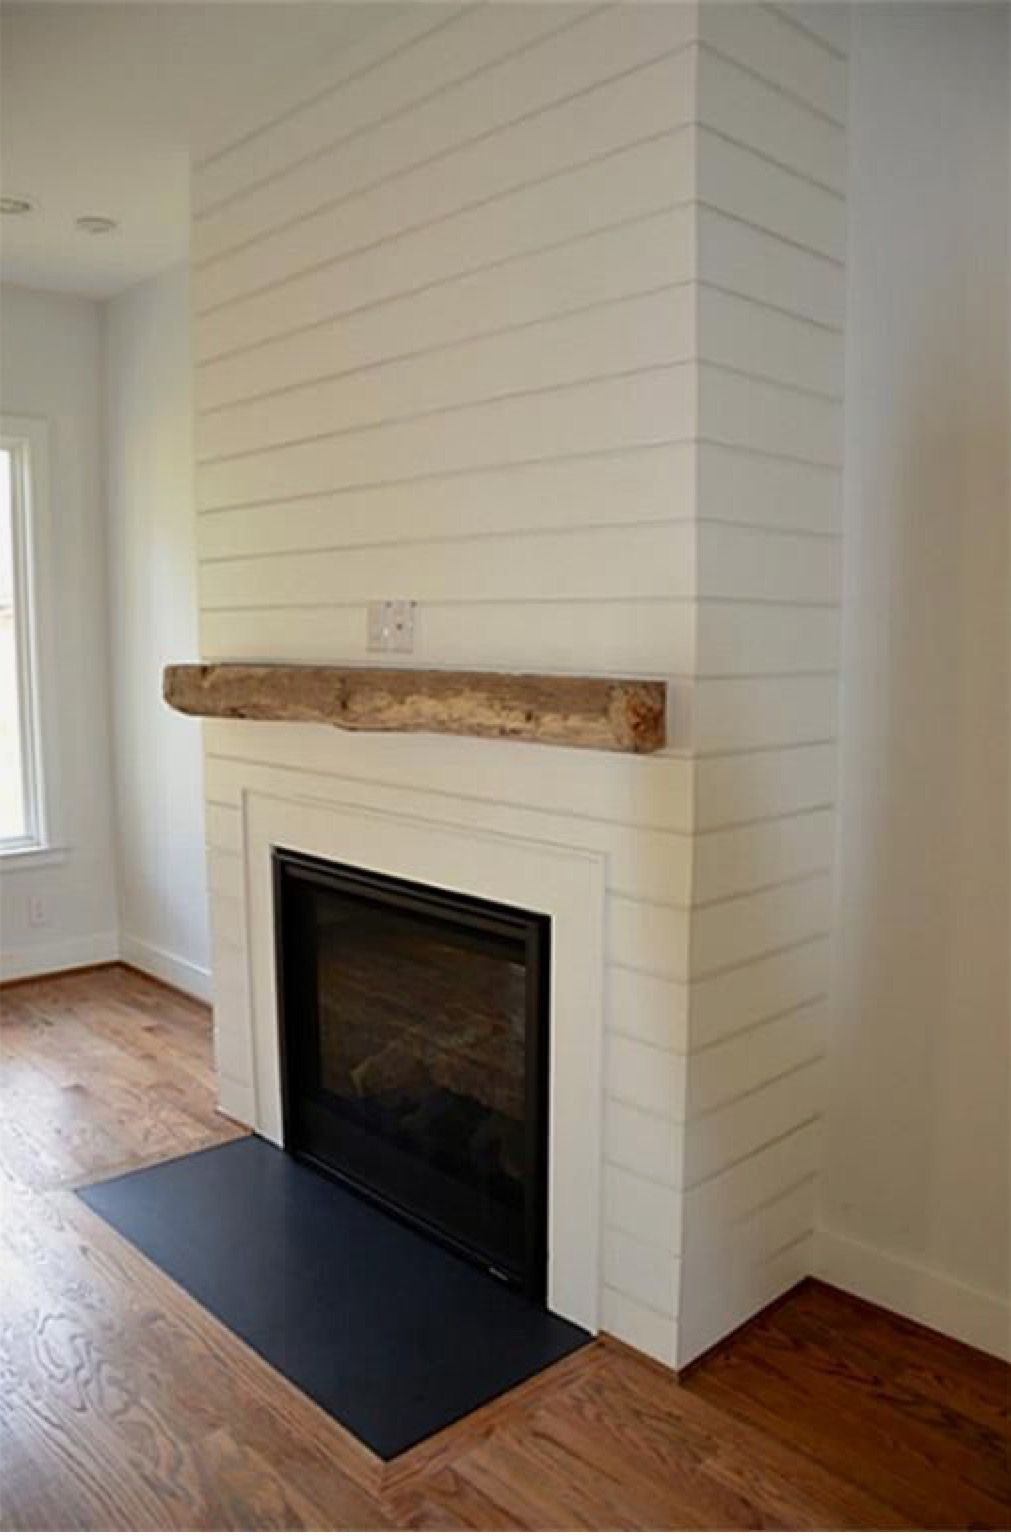 Pin By Brianna Creel On House Home Fireplace Farmhouse Fireplace Fireplace Design